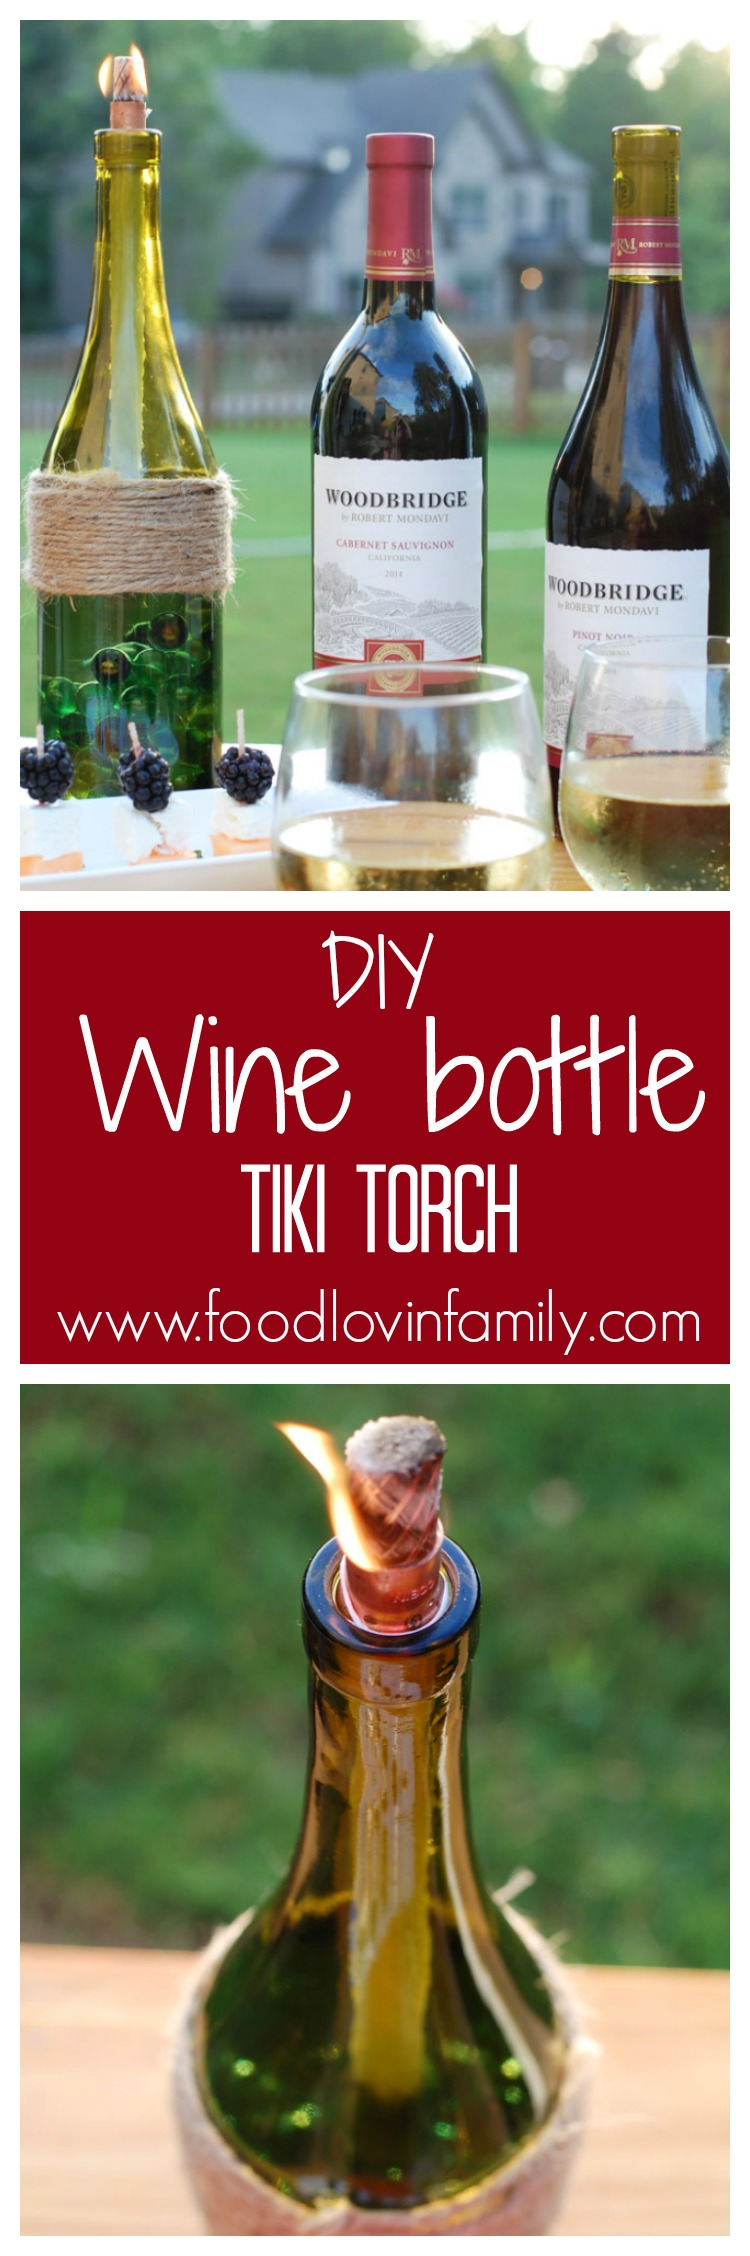 Turn your leftover wine bottles into beautiful backyard DIY wine bottle Tiki torches. They are a perfect way to recycle those old bottles and keep away the bugs from your backyard entertaining area.